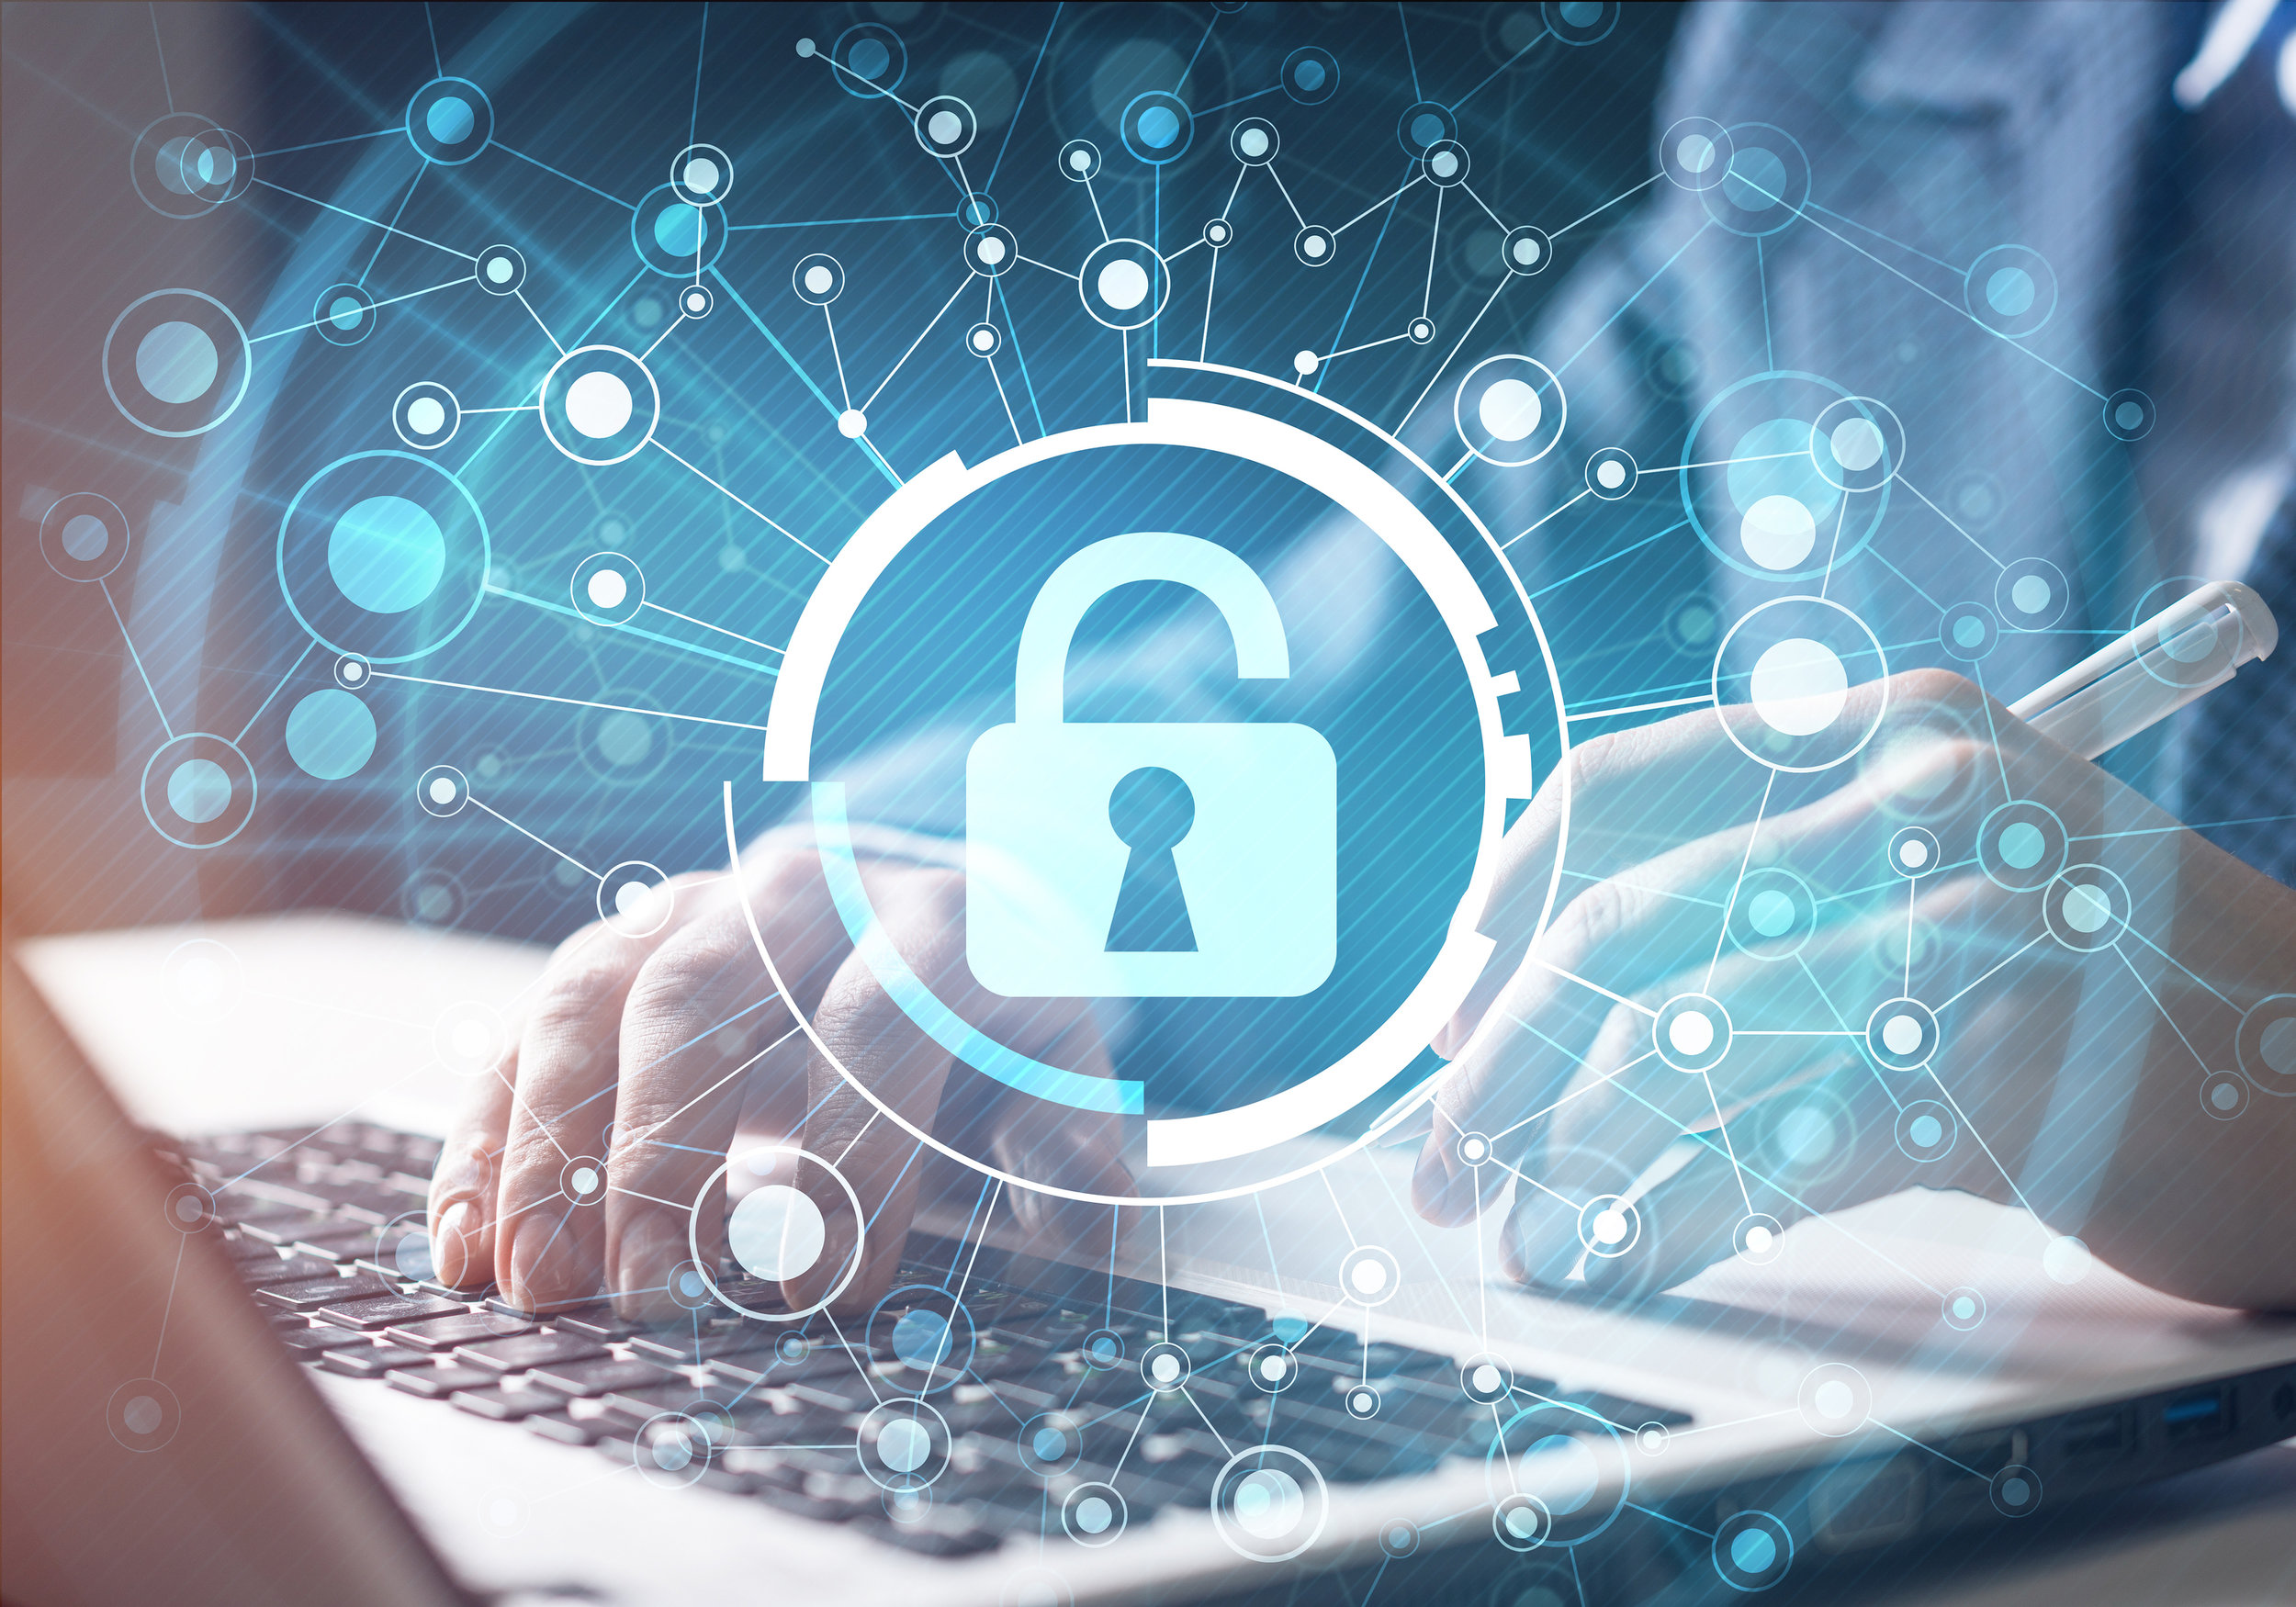 What Should I Do If My Personal Data Has Been Exposed?